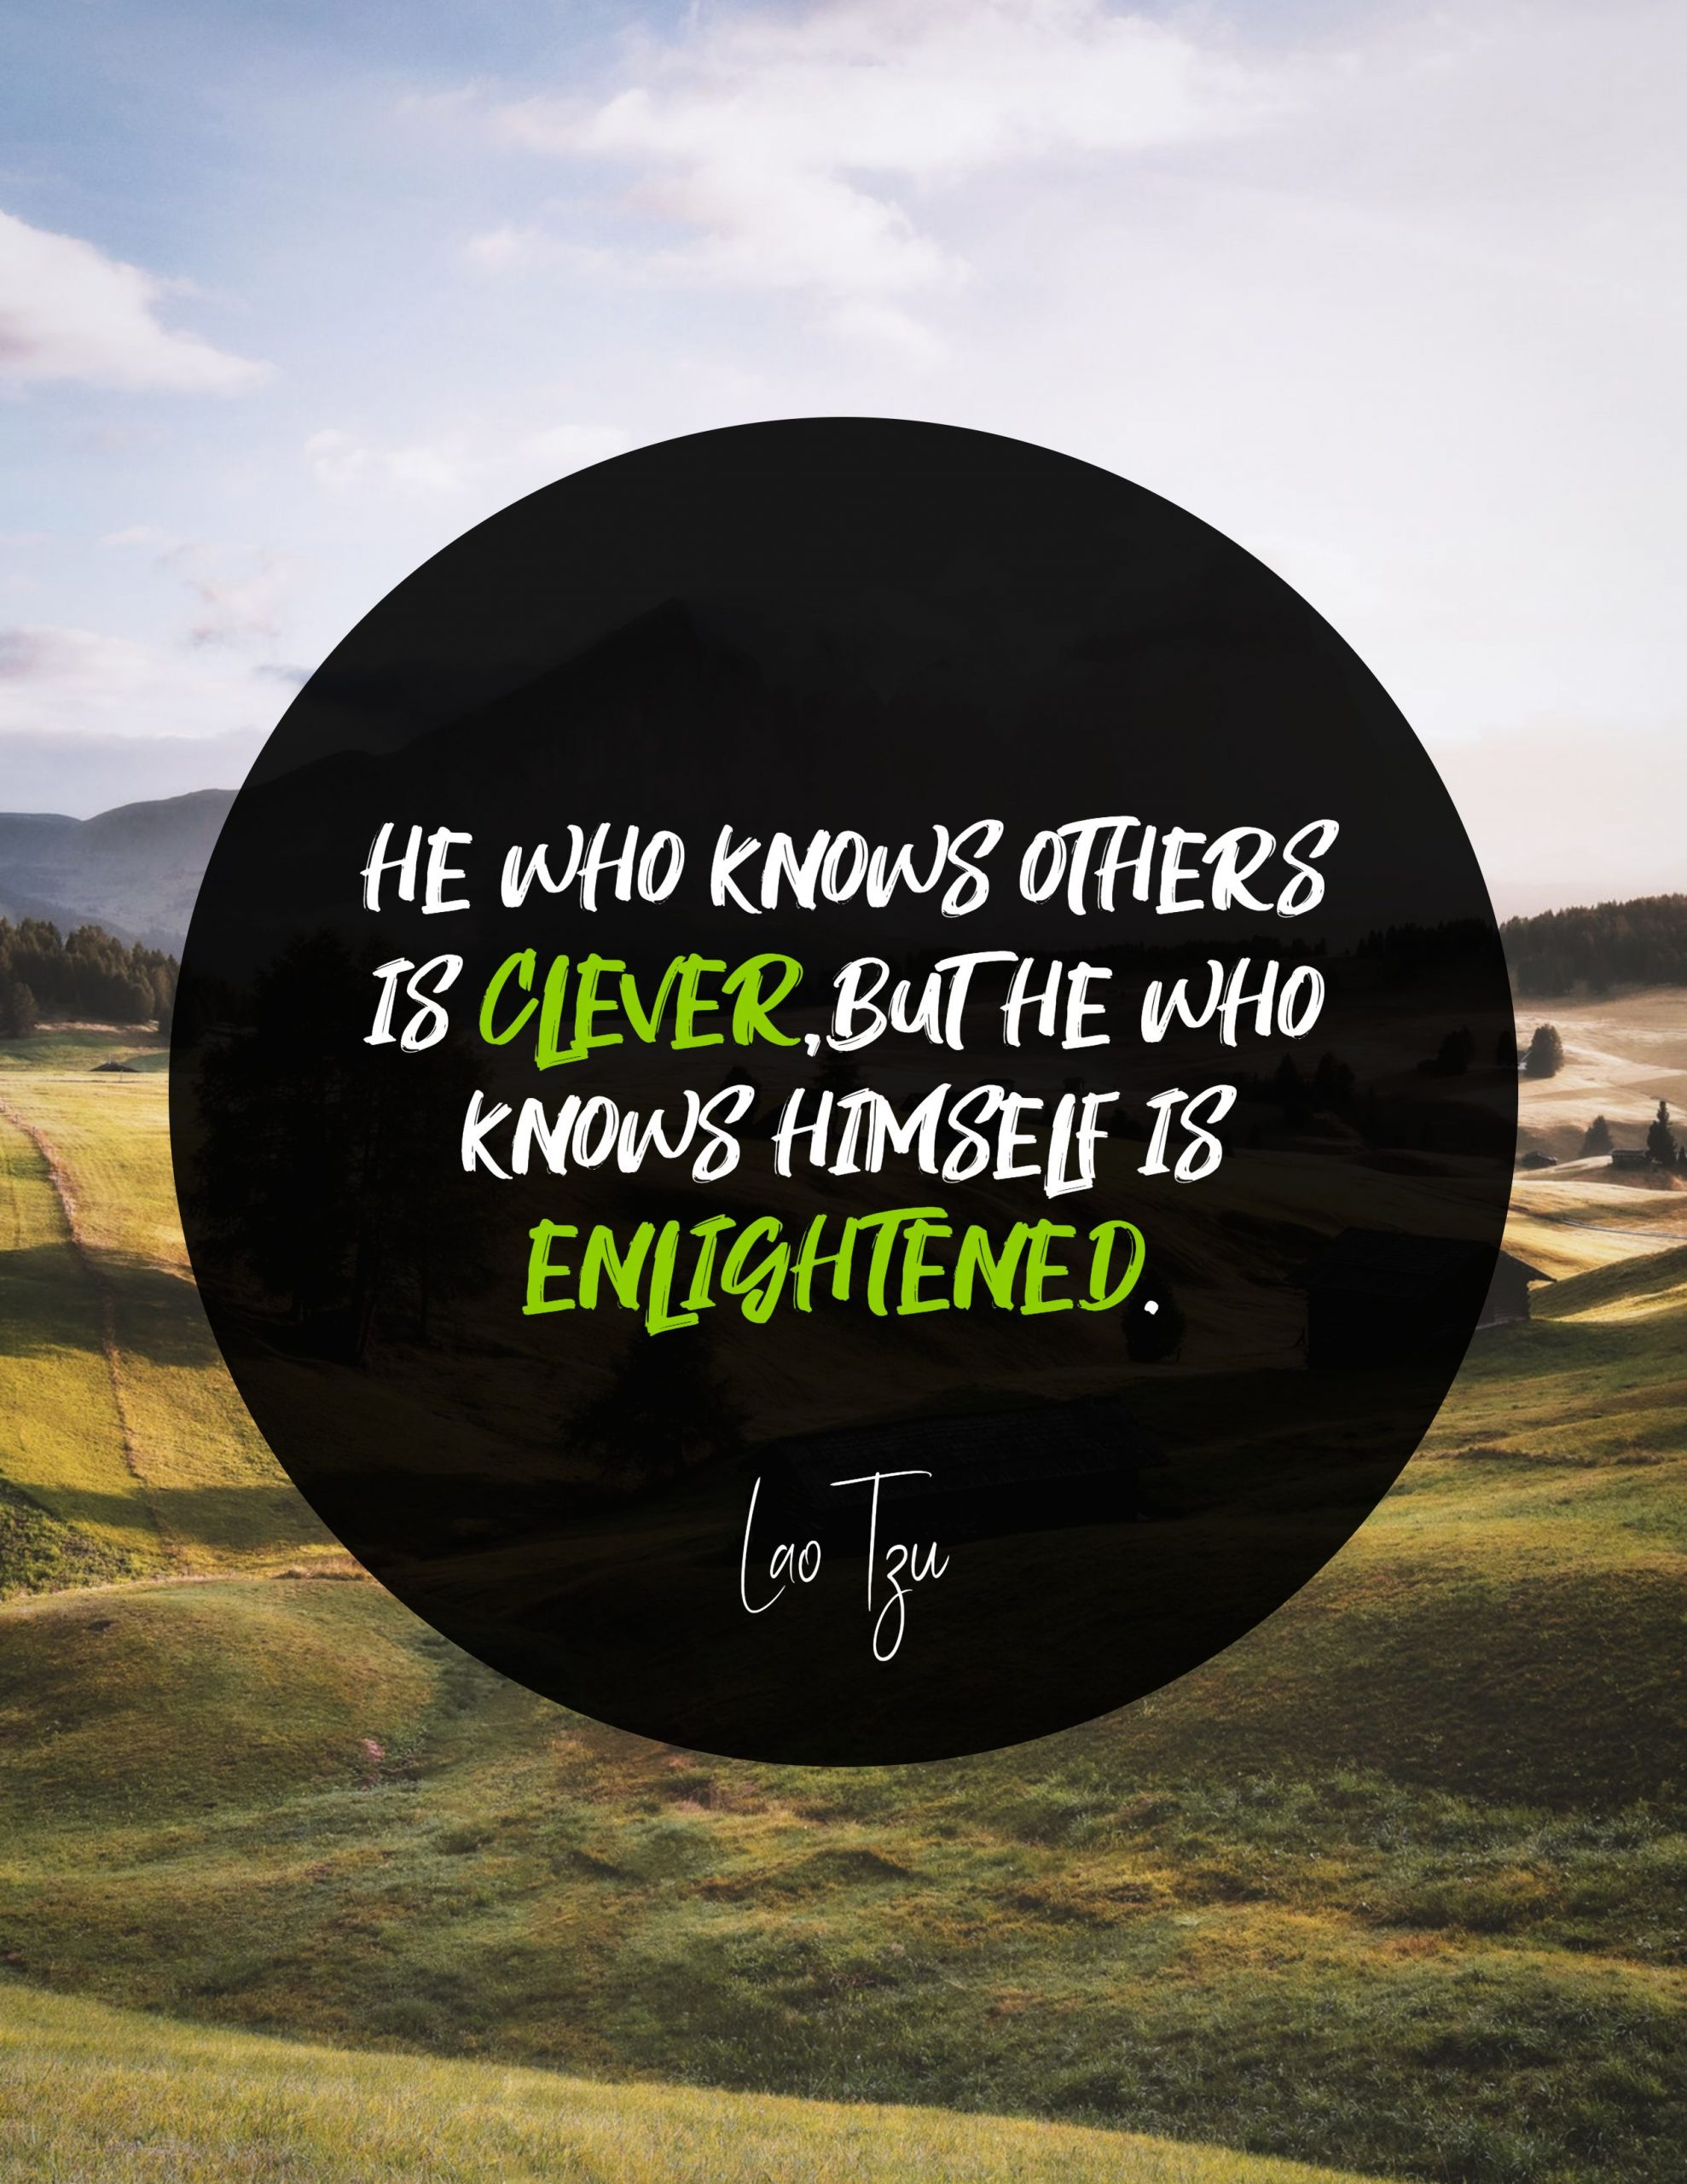 Quotes image of He who knows others is clever, but he who knows himself is enlightened.